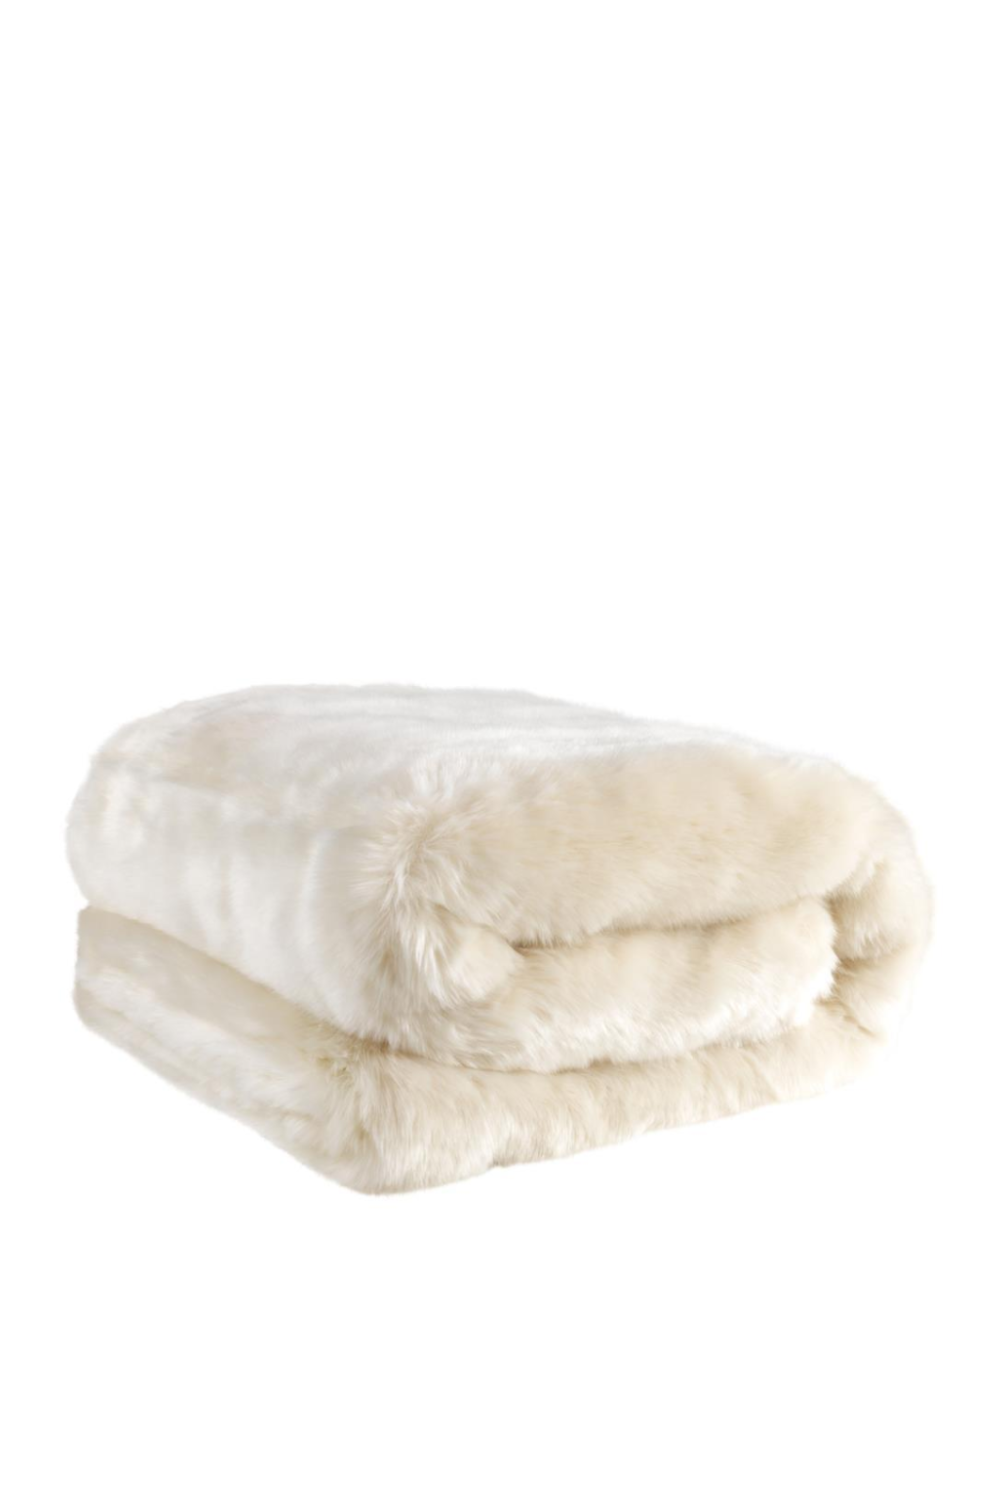 White Fur Throw | Eichholtz Alaska